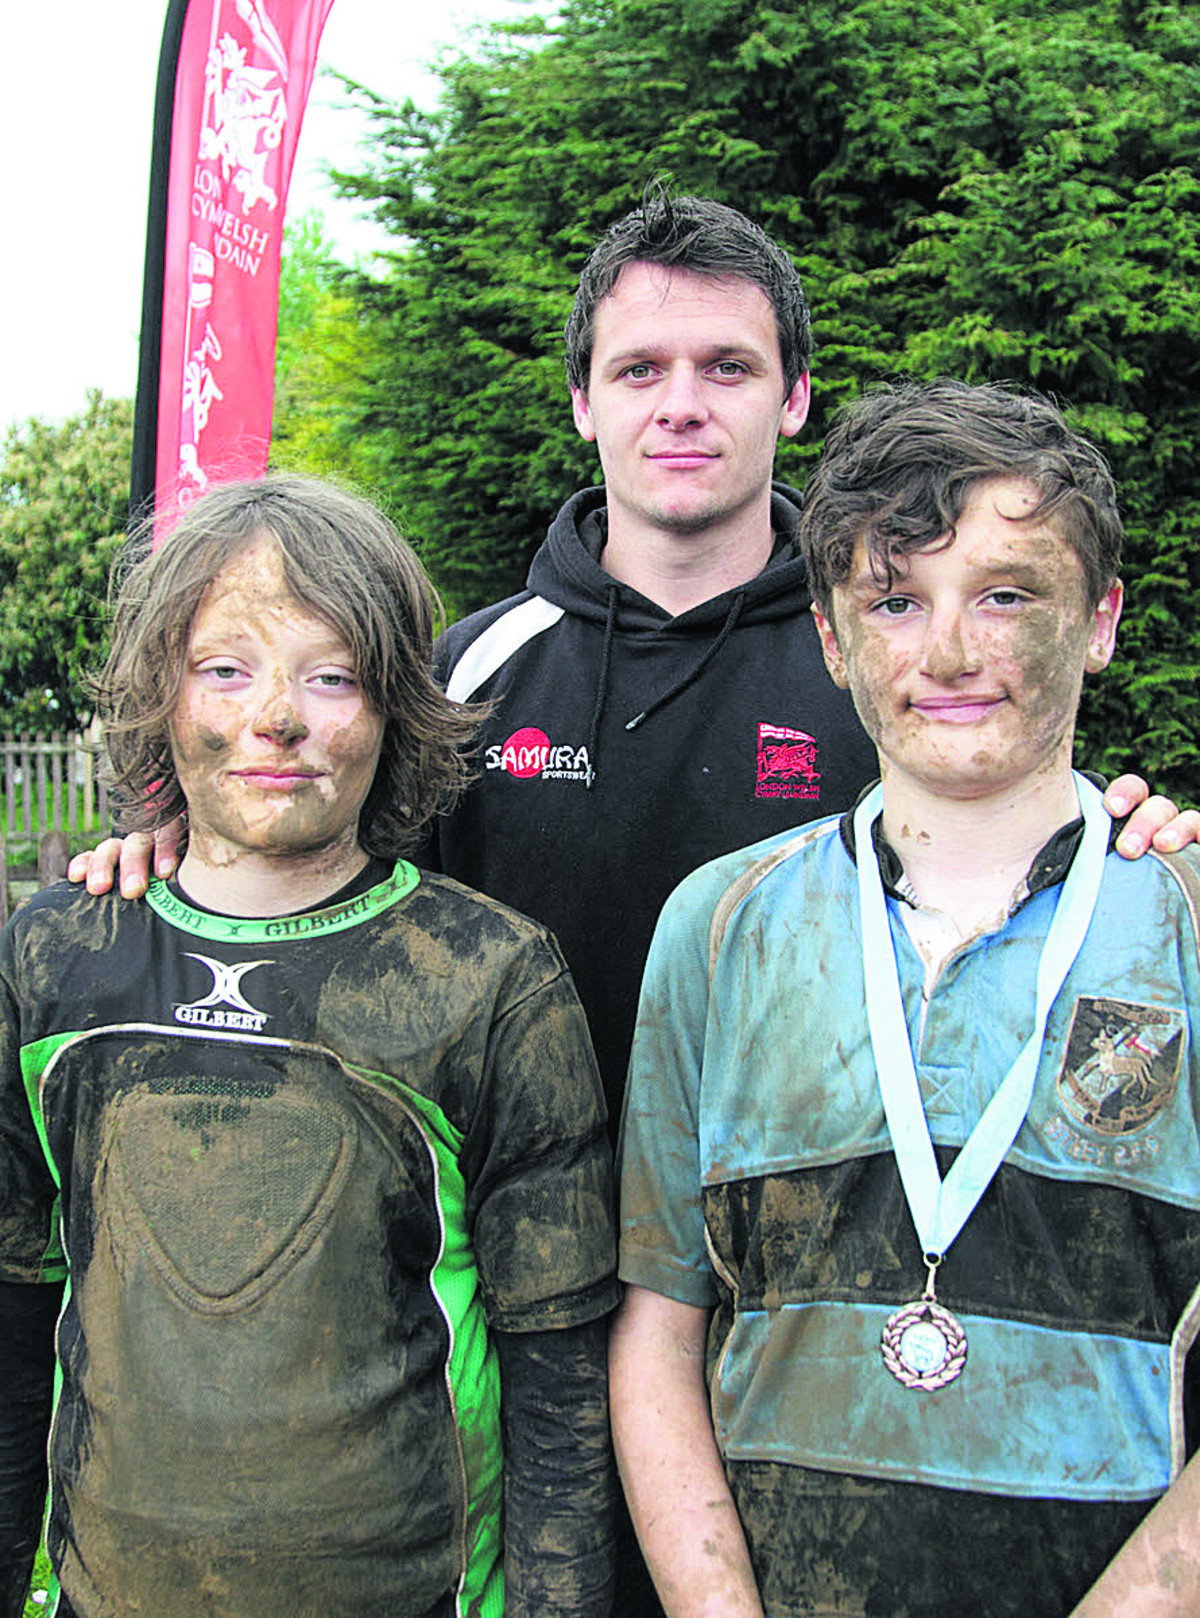 Ben Williamson (left) and Ben Edwards, from Witney RFC, pictured with London Welsh's Rod Lewis at the Oxfordshire mini & midi rugby festival